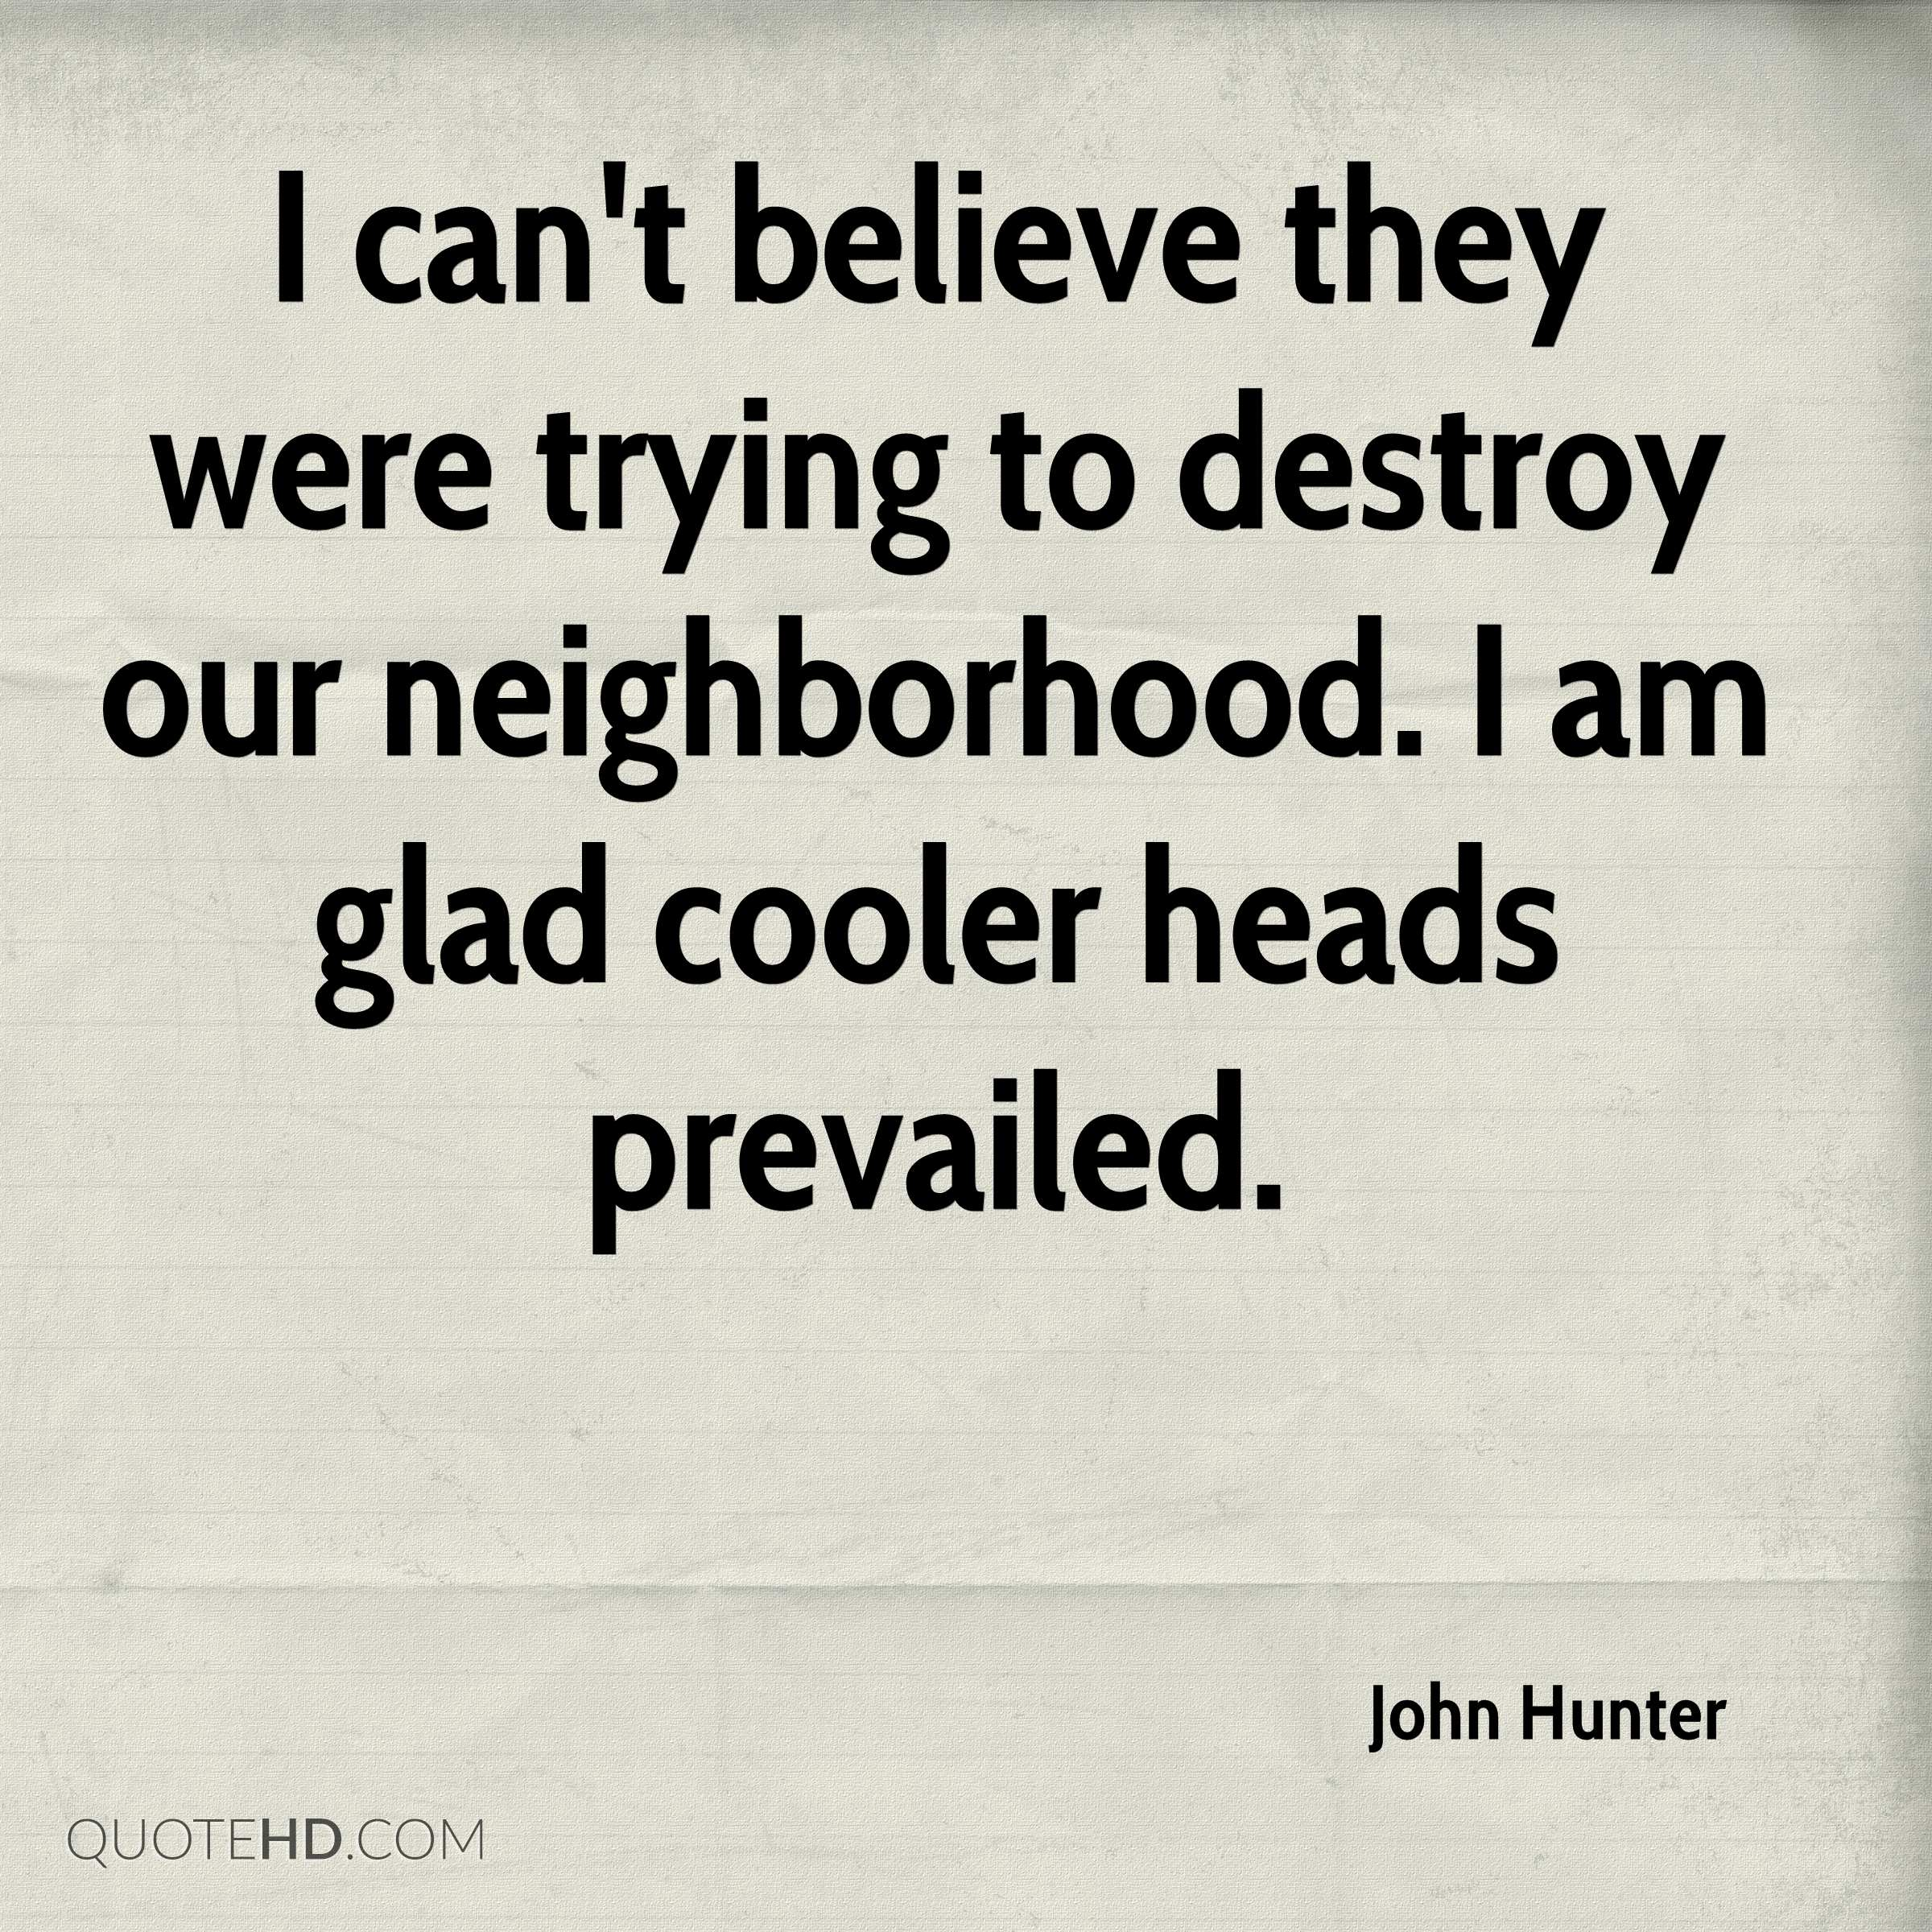 I can't believe they were trying to destroy our neighborhood. I am glad cooler heads prevailed.